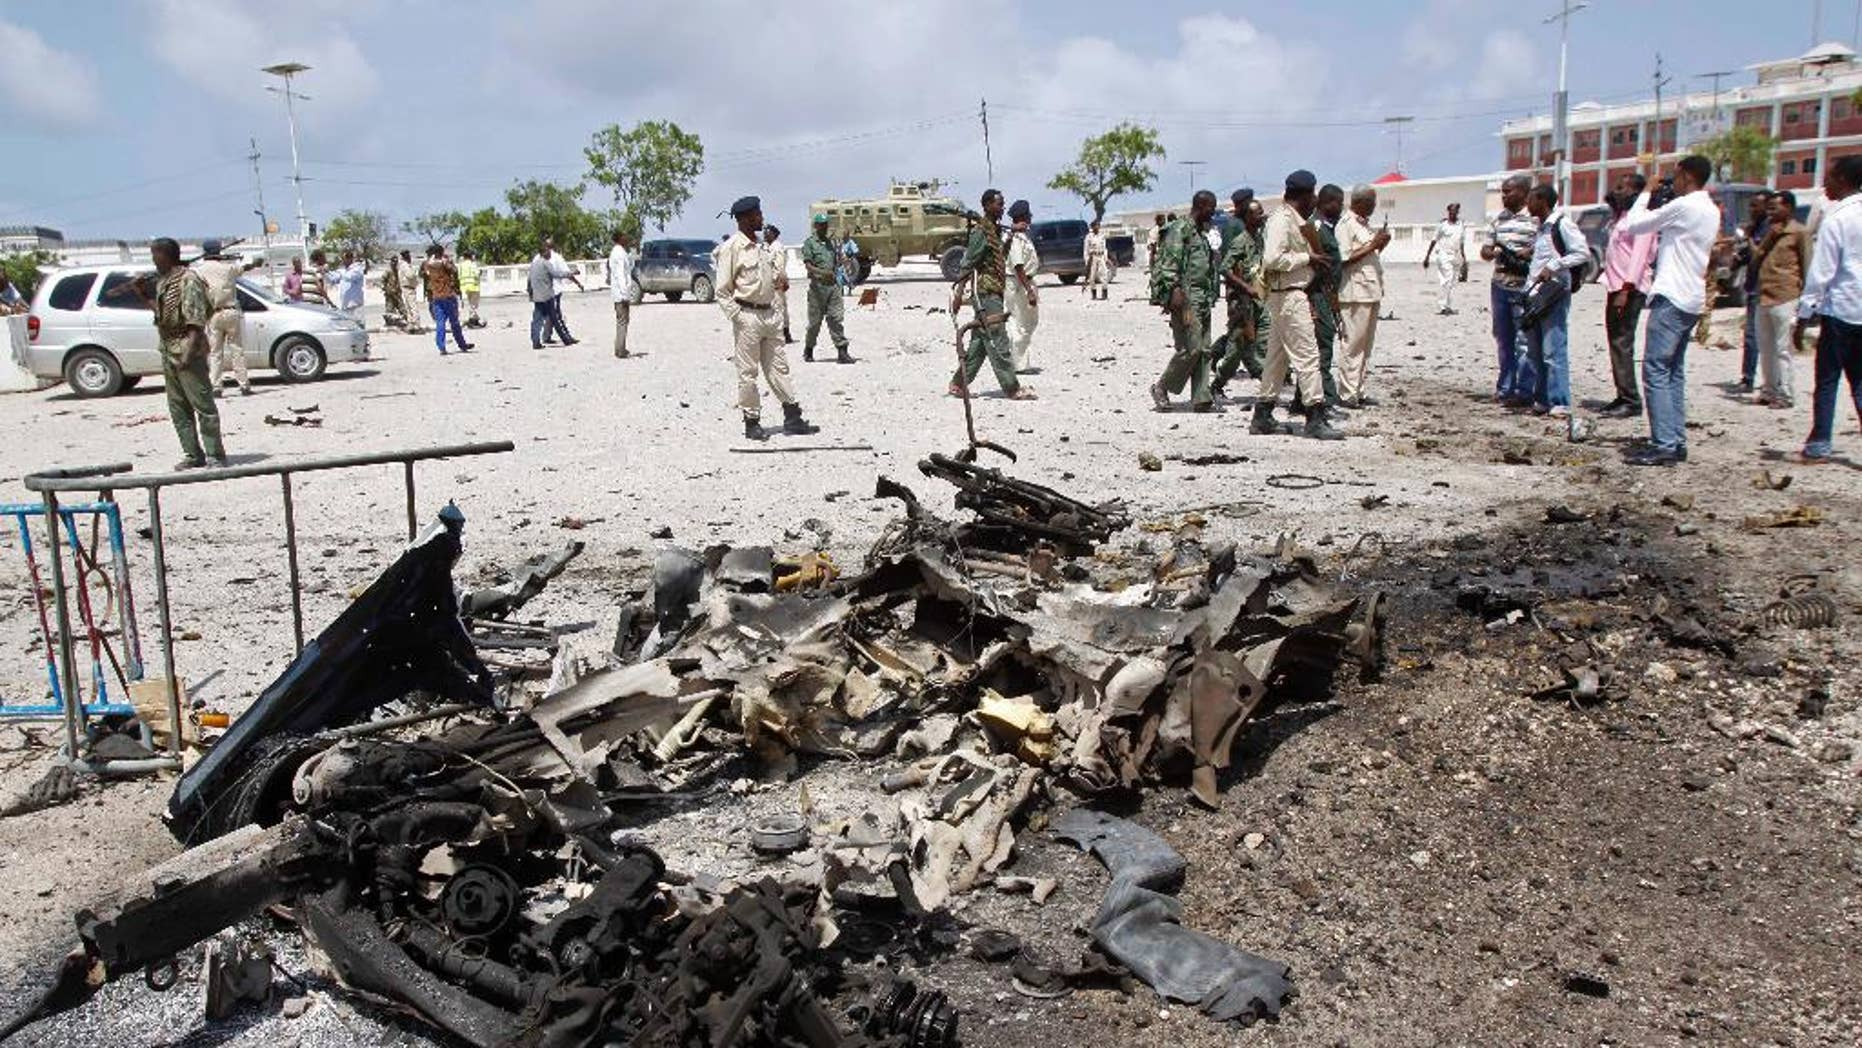 Somali soldiers stand near the wreckage of a suicide car bomb near the Somali parliament in Mogadishu, Somalia, Saturday, July 5, 2014. A Somali police officer says troops have thwarted an attack by a suicide bomber outside the heavily guarded parliament headquarters. Capt. Mohamed Hussein, a senior Somali police officer says troops stopped a suicide car bomber who detonated his explosive-laden car at a checkpoint near the entrance to Somalia's parliament. (AP Photo/Farah Abdi Warsameh)